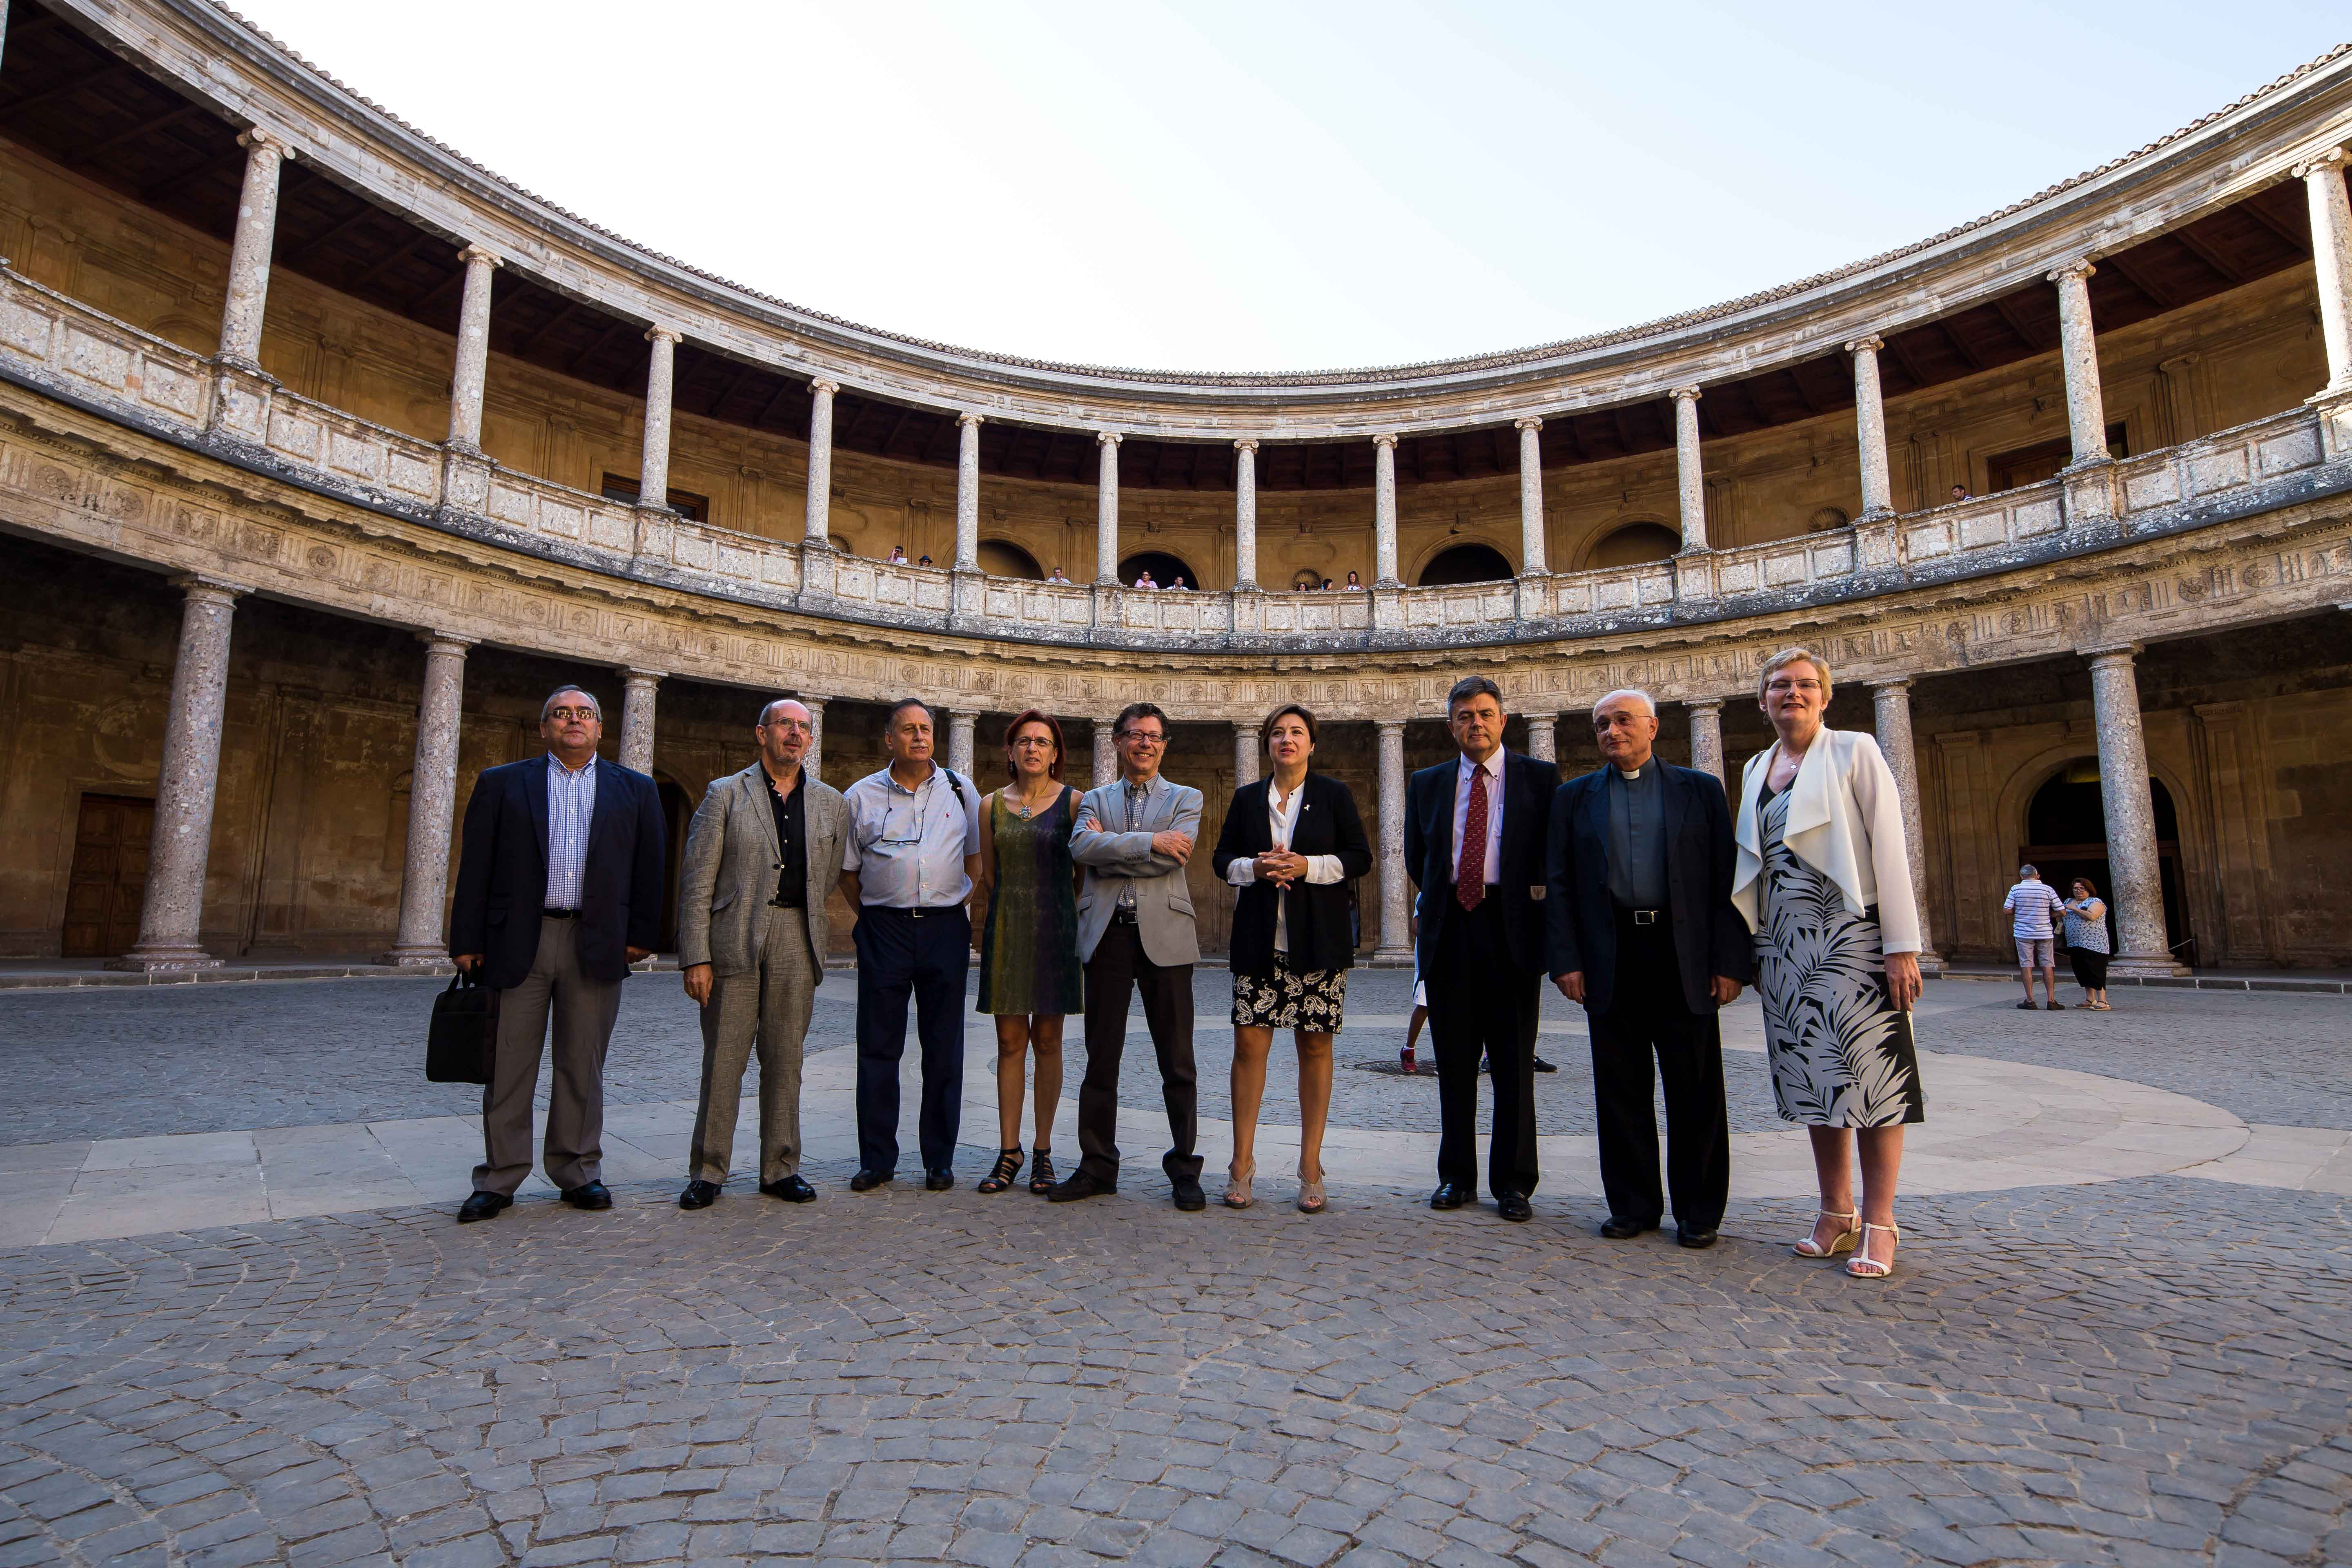 The Alhambra and Granada in the footsteps of a New European Renaissance through a cultural tourism route